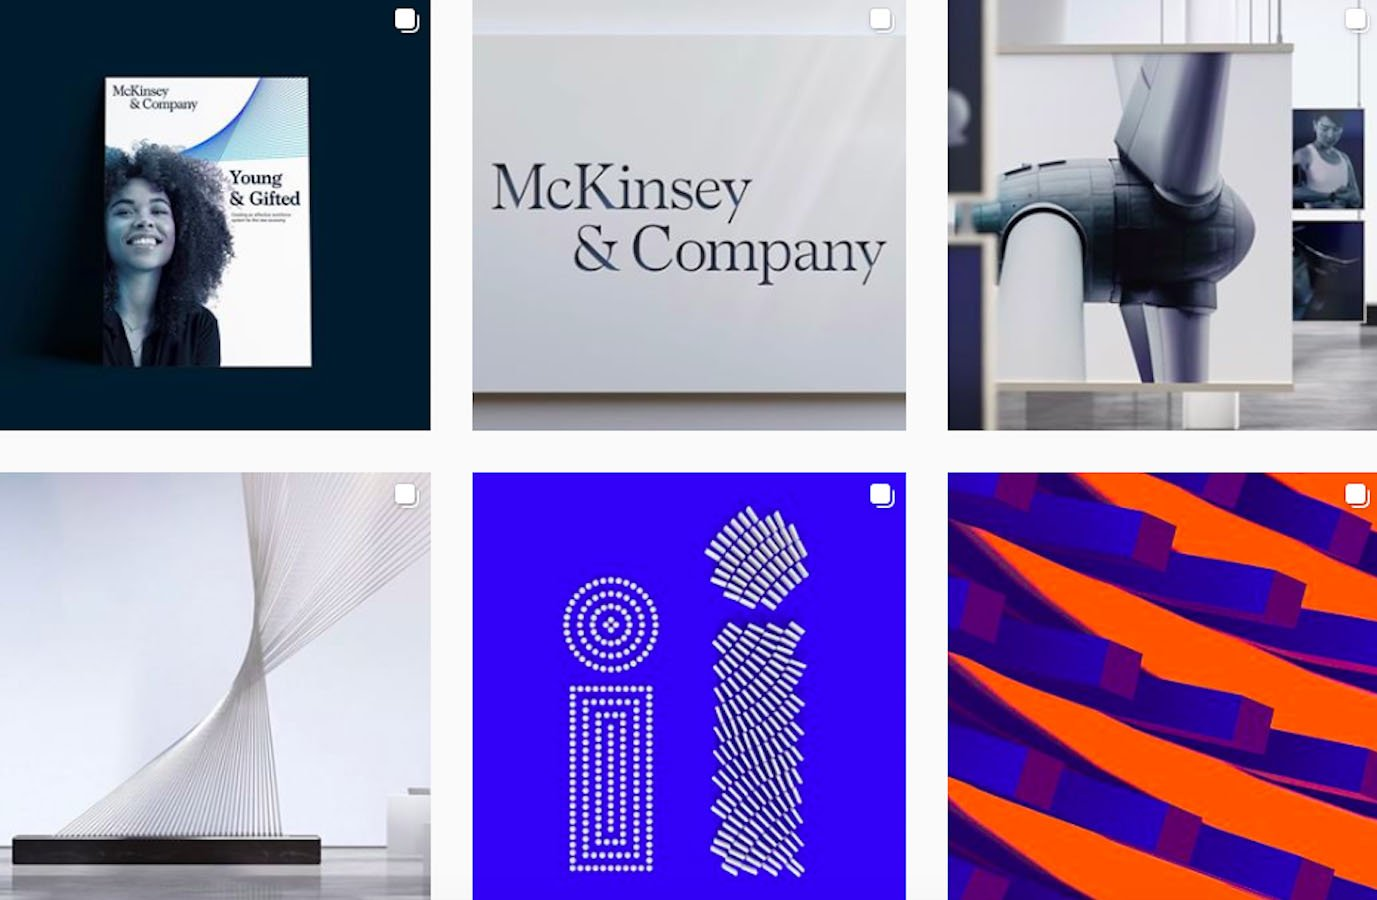 Web Design Inspiration: 110+ Accounts On Instagram and 10+ Best UX & Web Design Books in 2020 - wolffolins